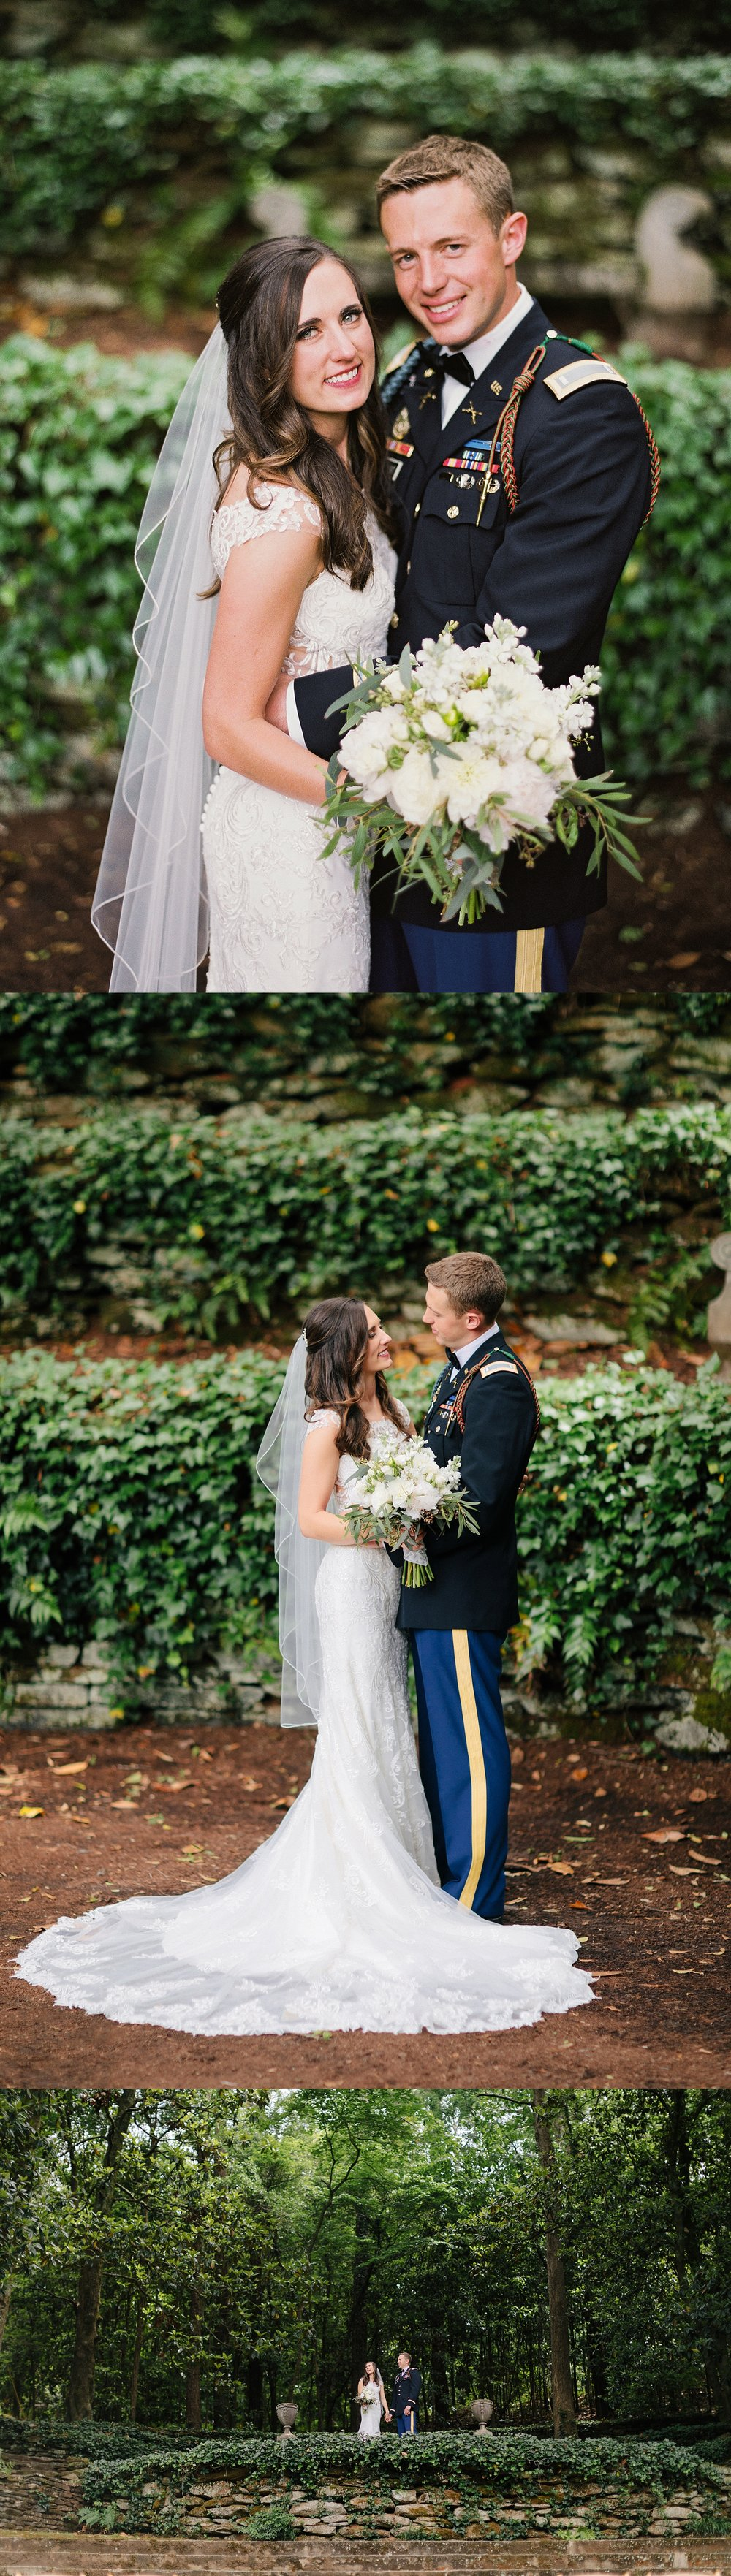 atlanta-southern-garden-wedding